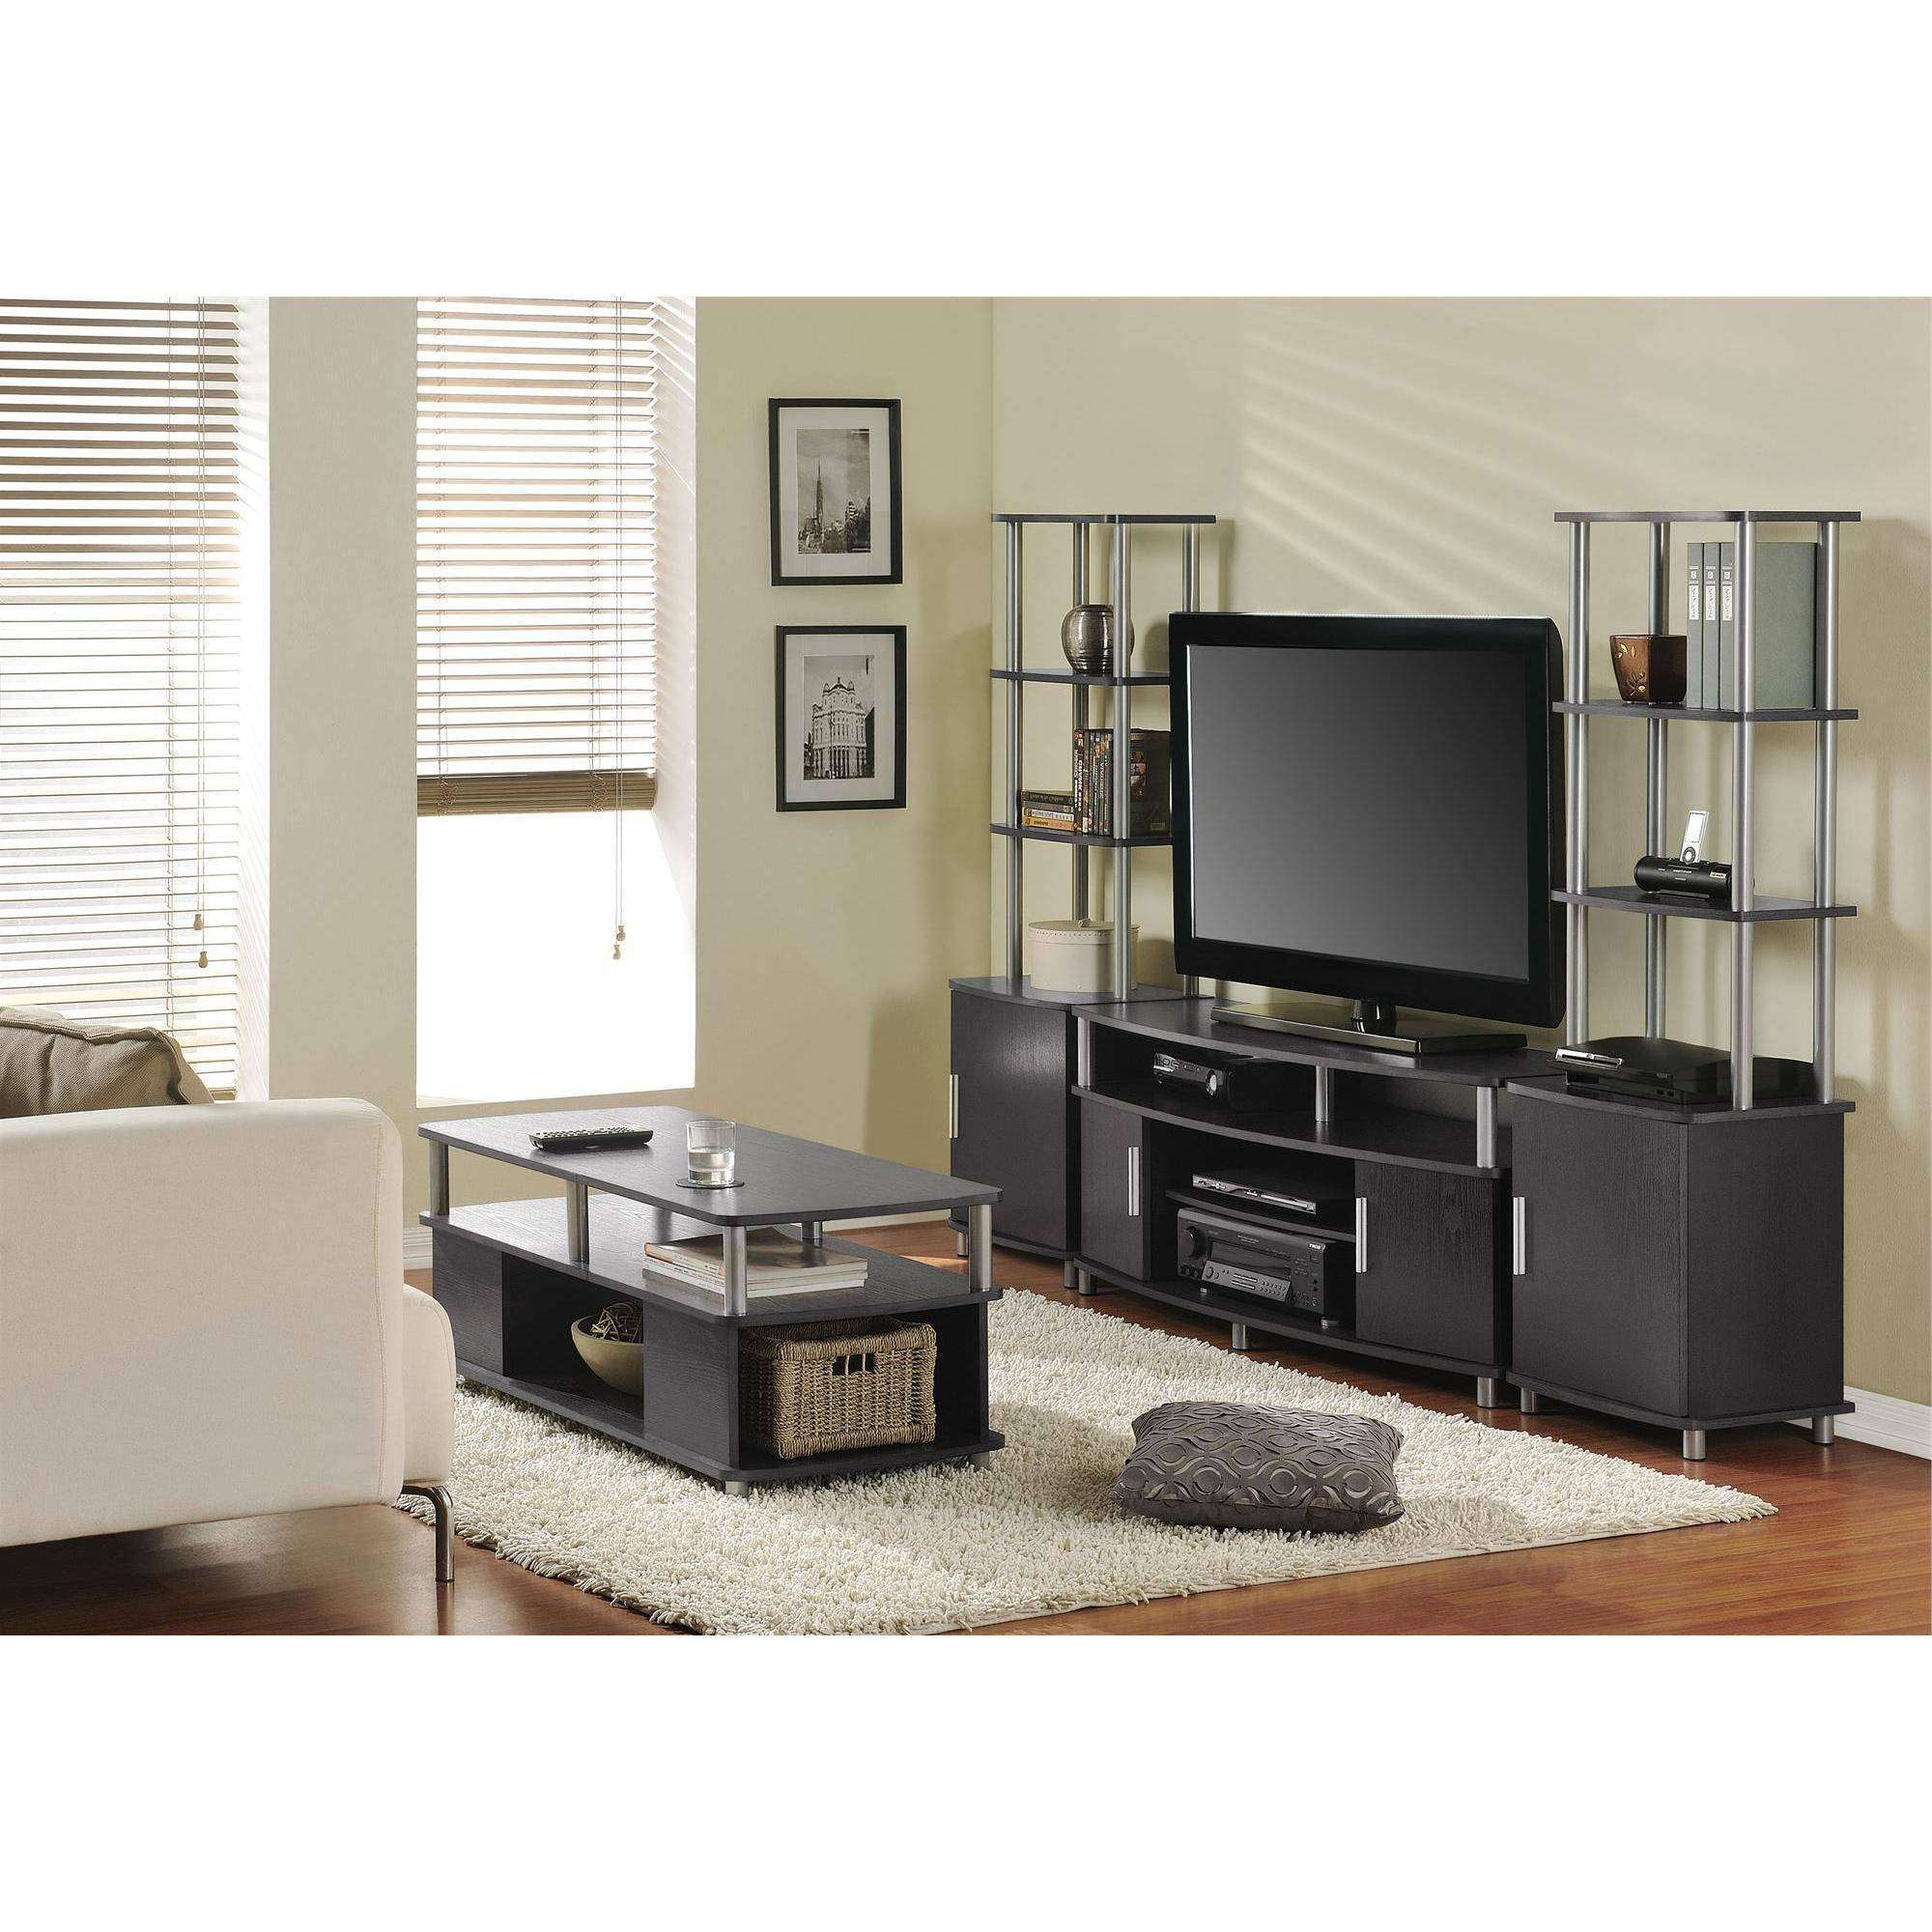 Coffee Table : Coffee Table Tv Stand And Breathtaking Photo With Coffee Tables And Tv Stands Matching (View 17 of 20)